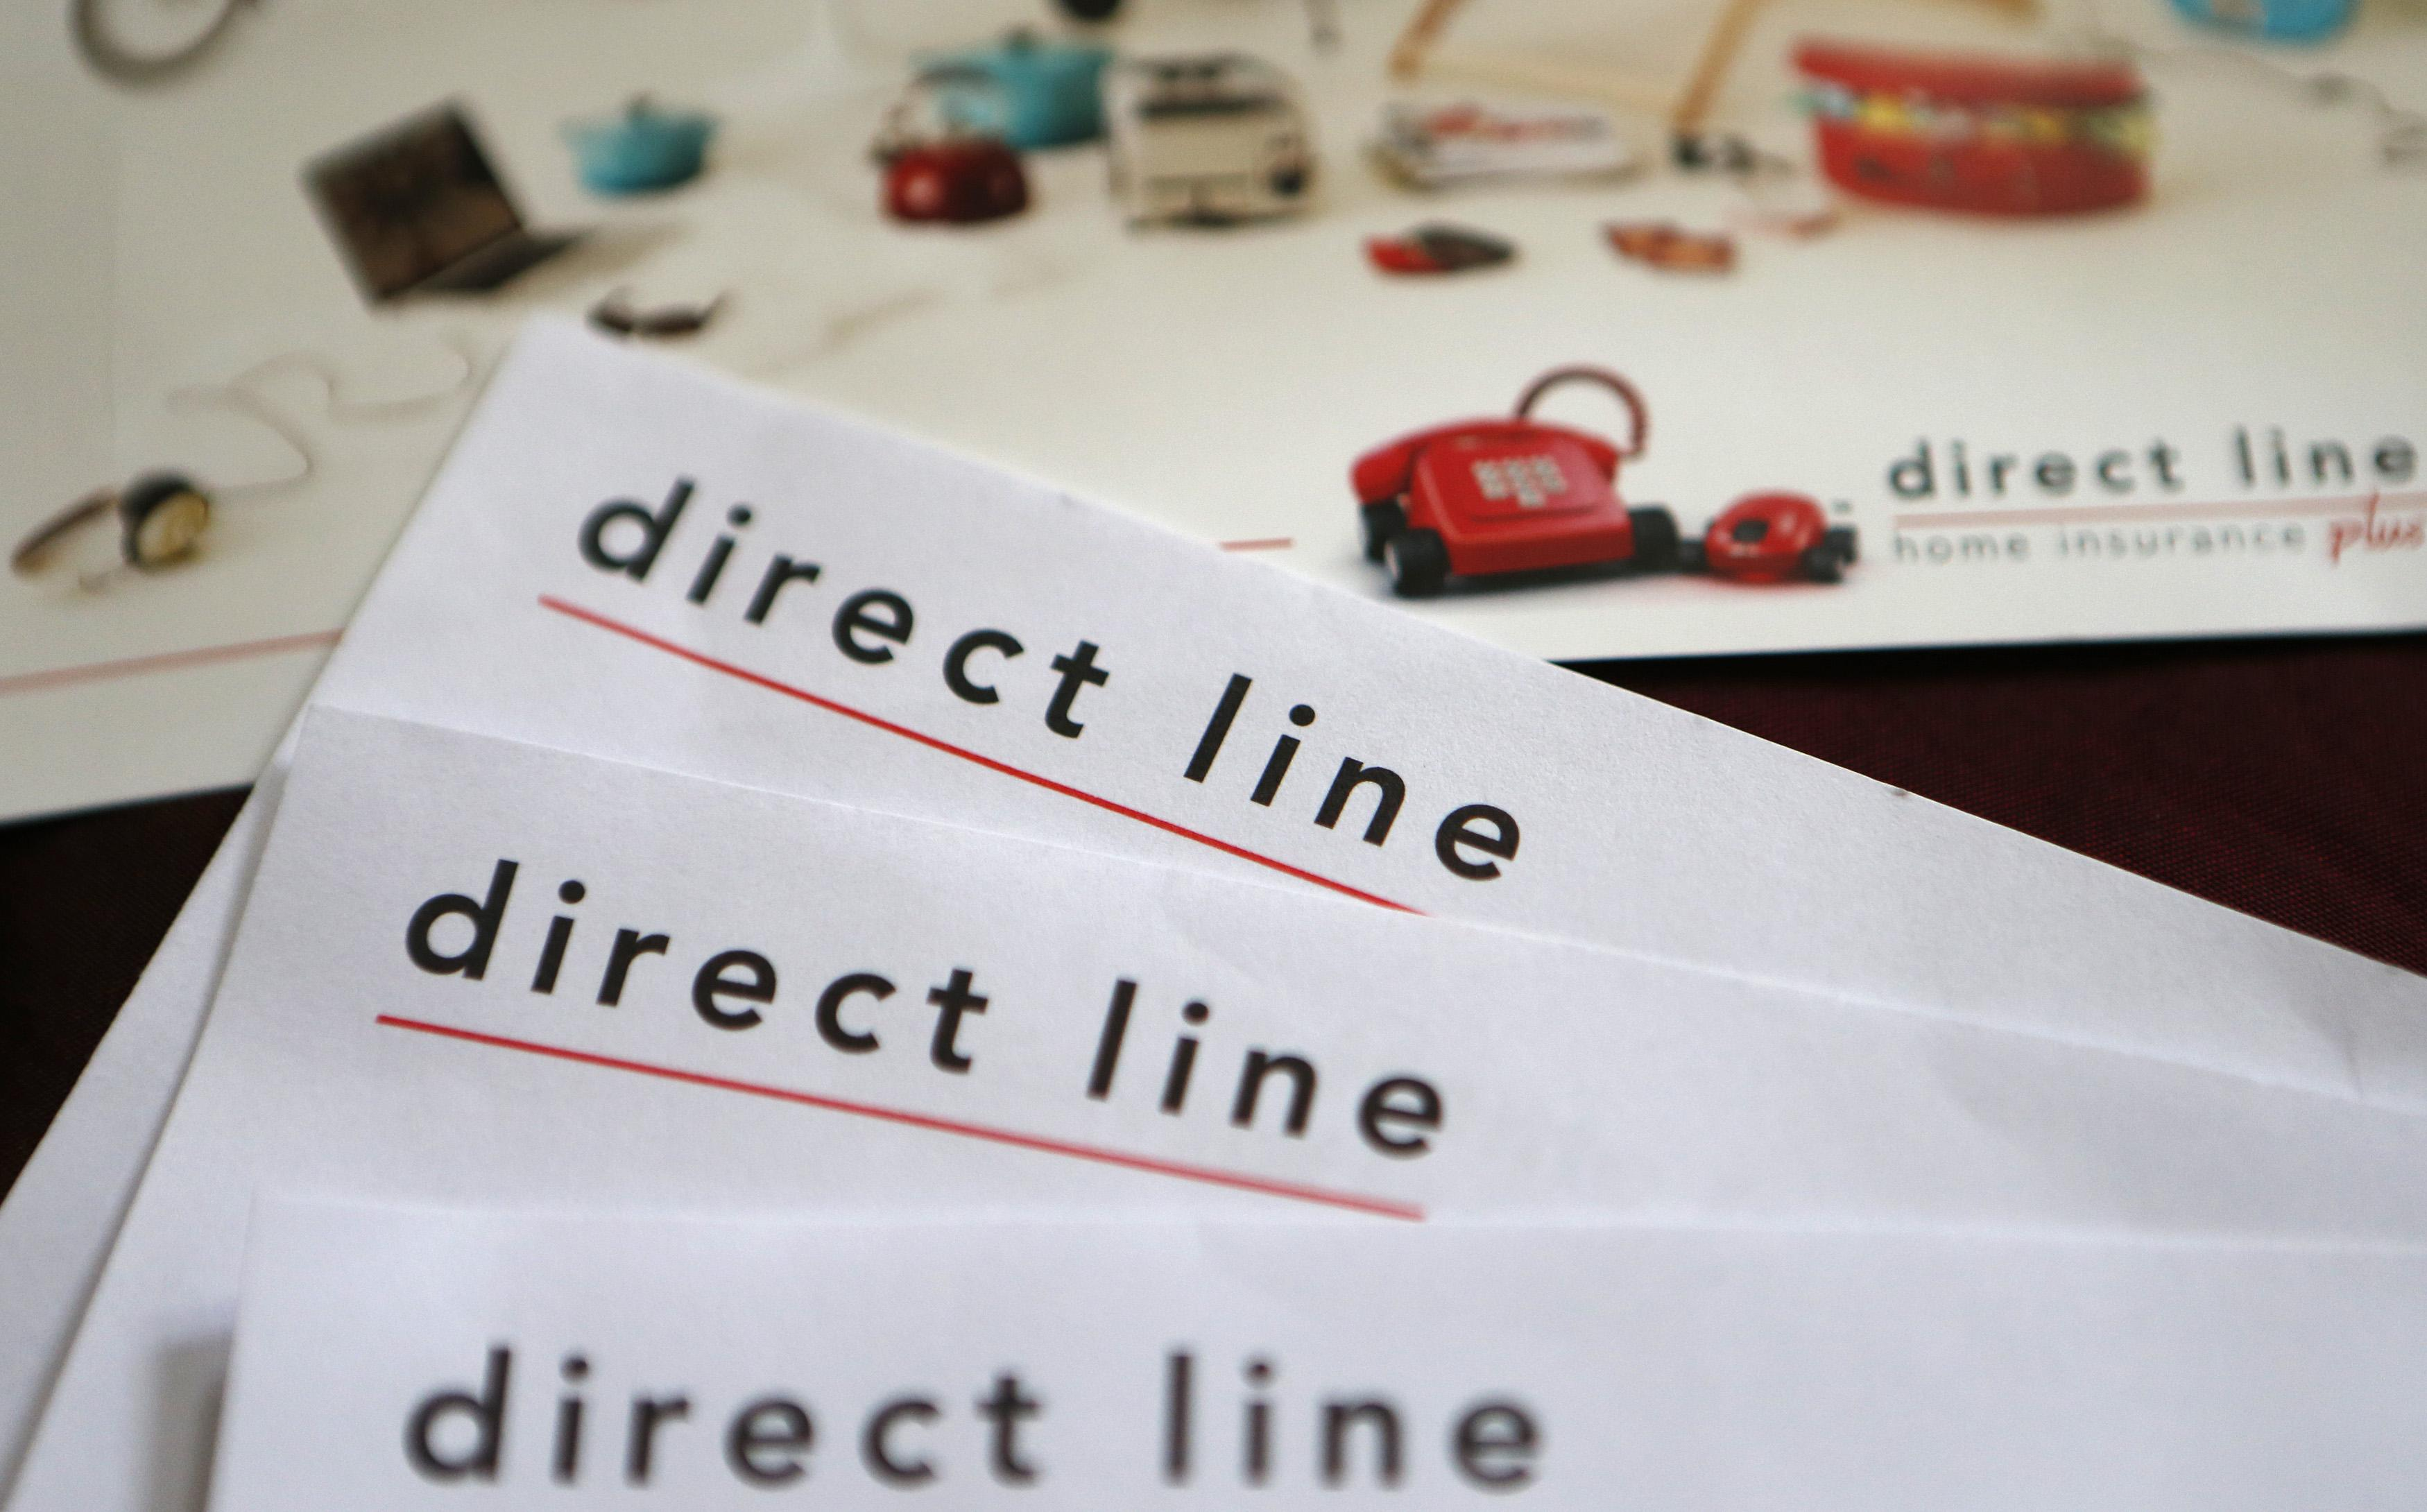 UK insurer Direct Line to rein in costs as competition intensifies